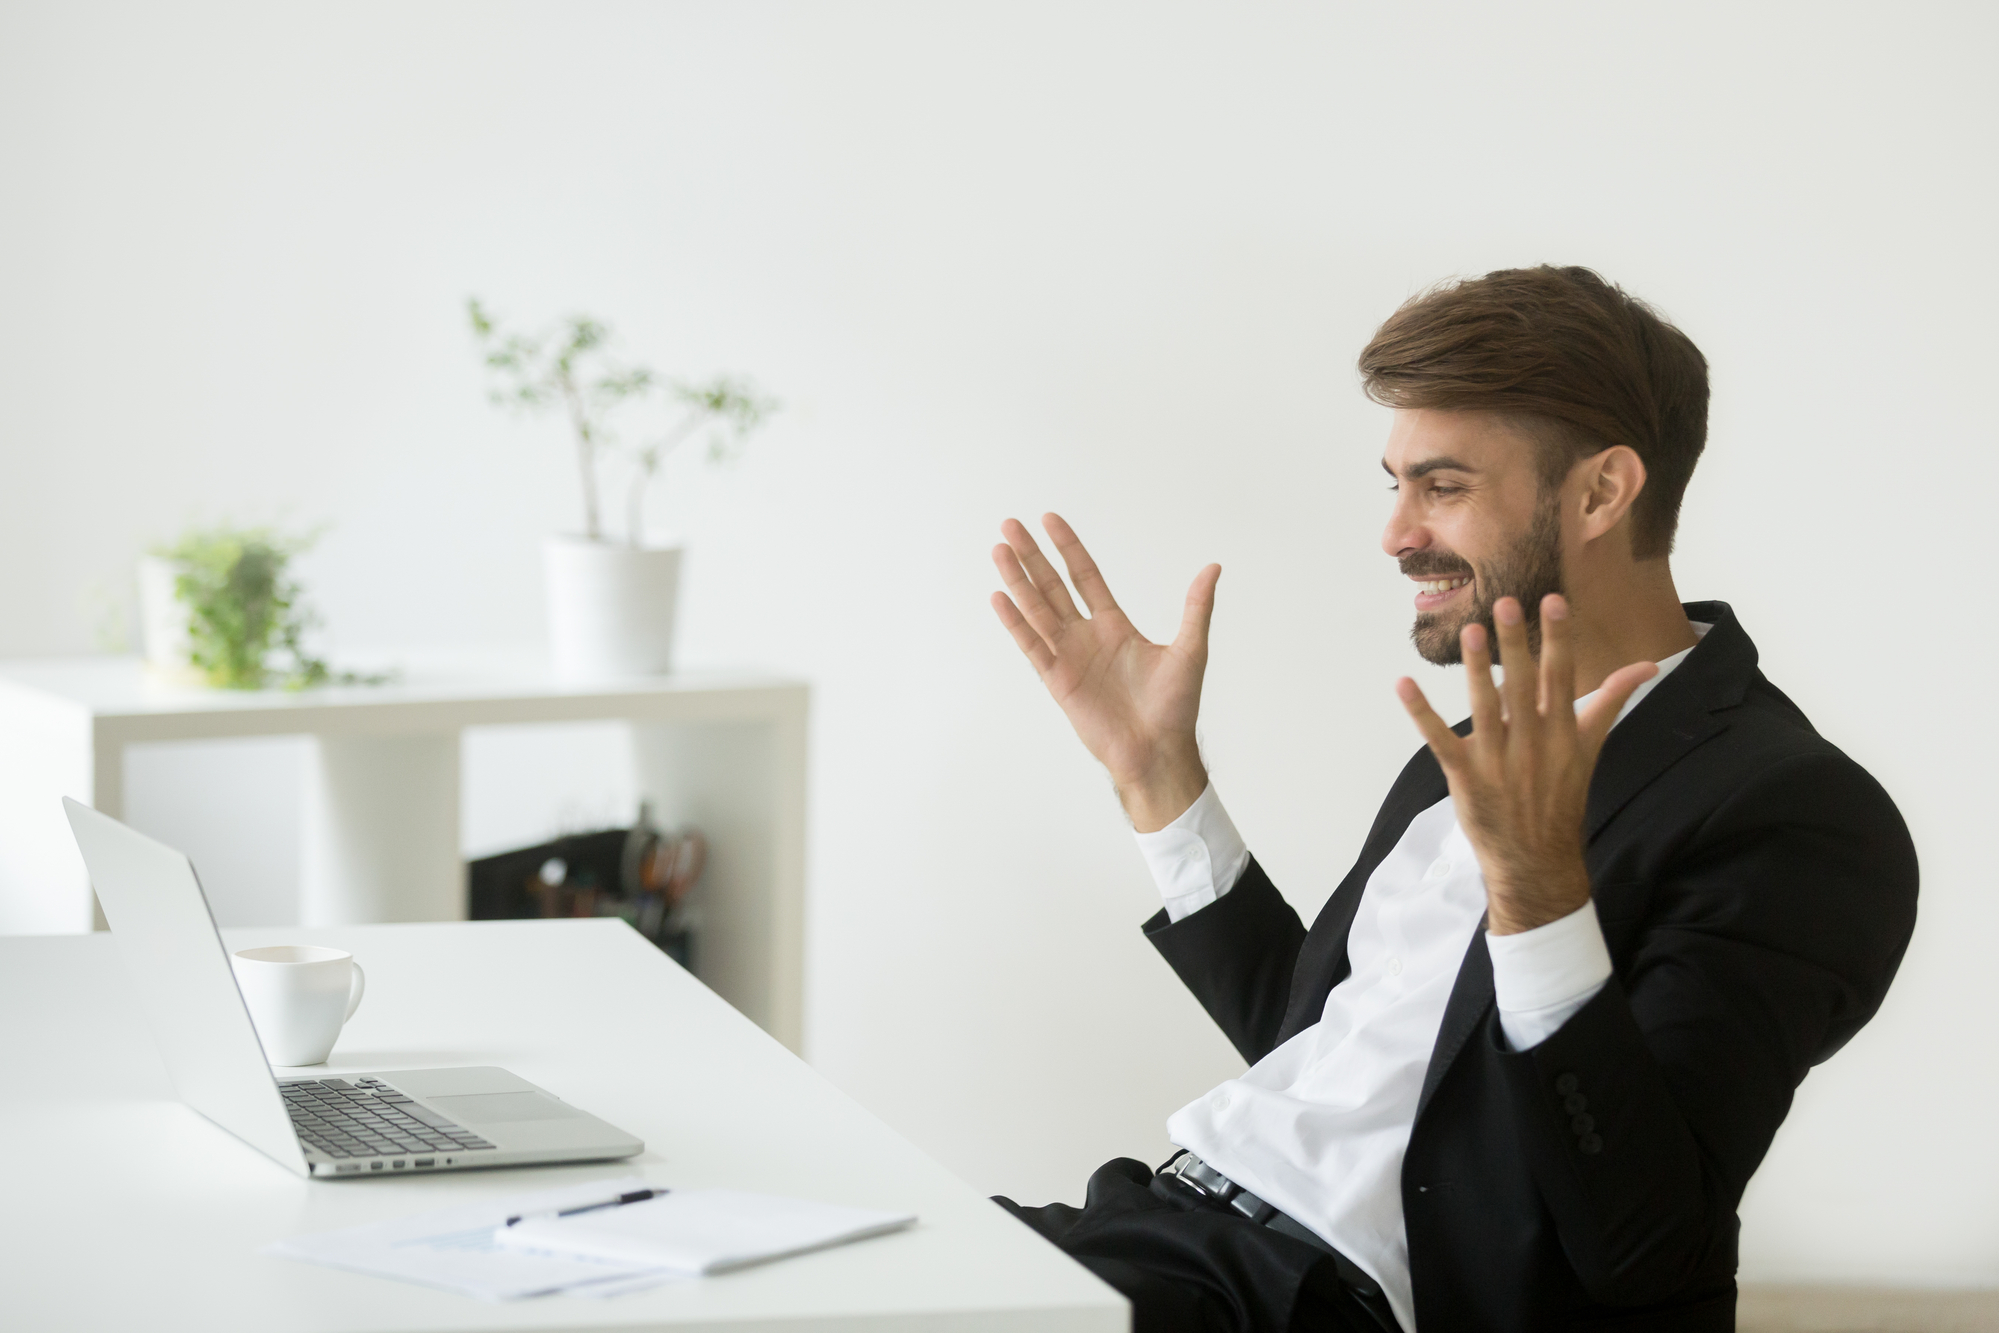 Happy company ceo satisfied with online achievement looking at l-1